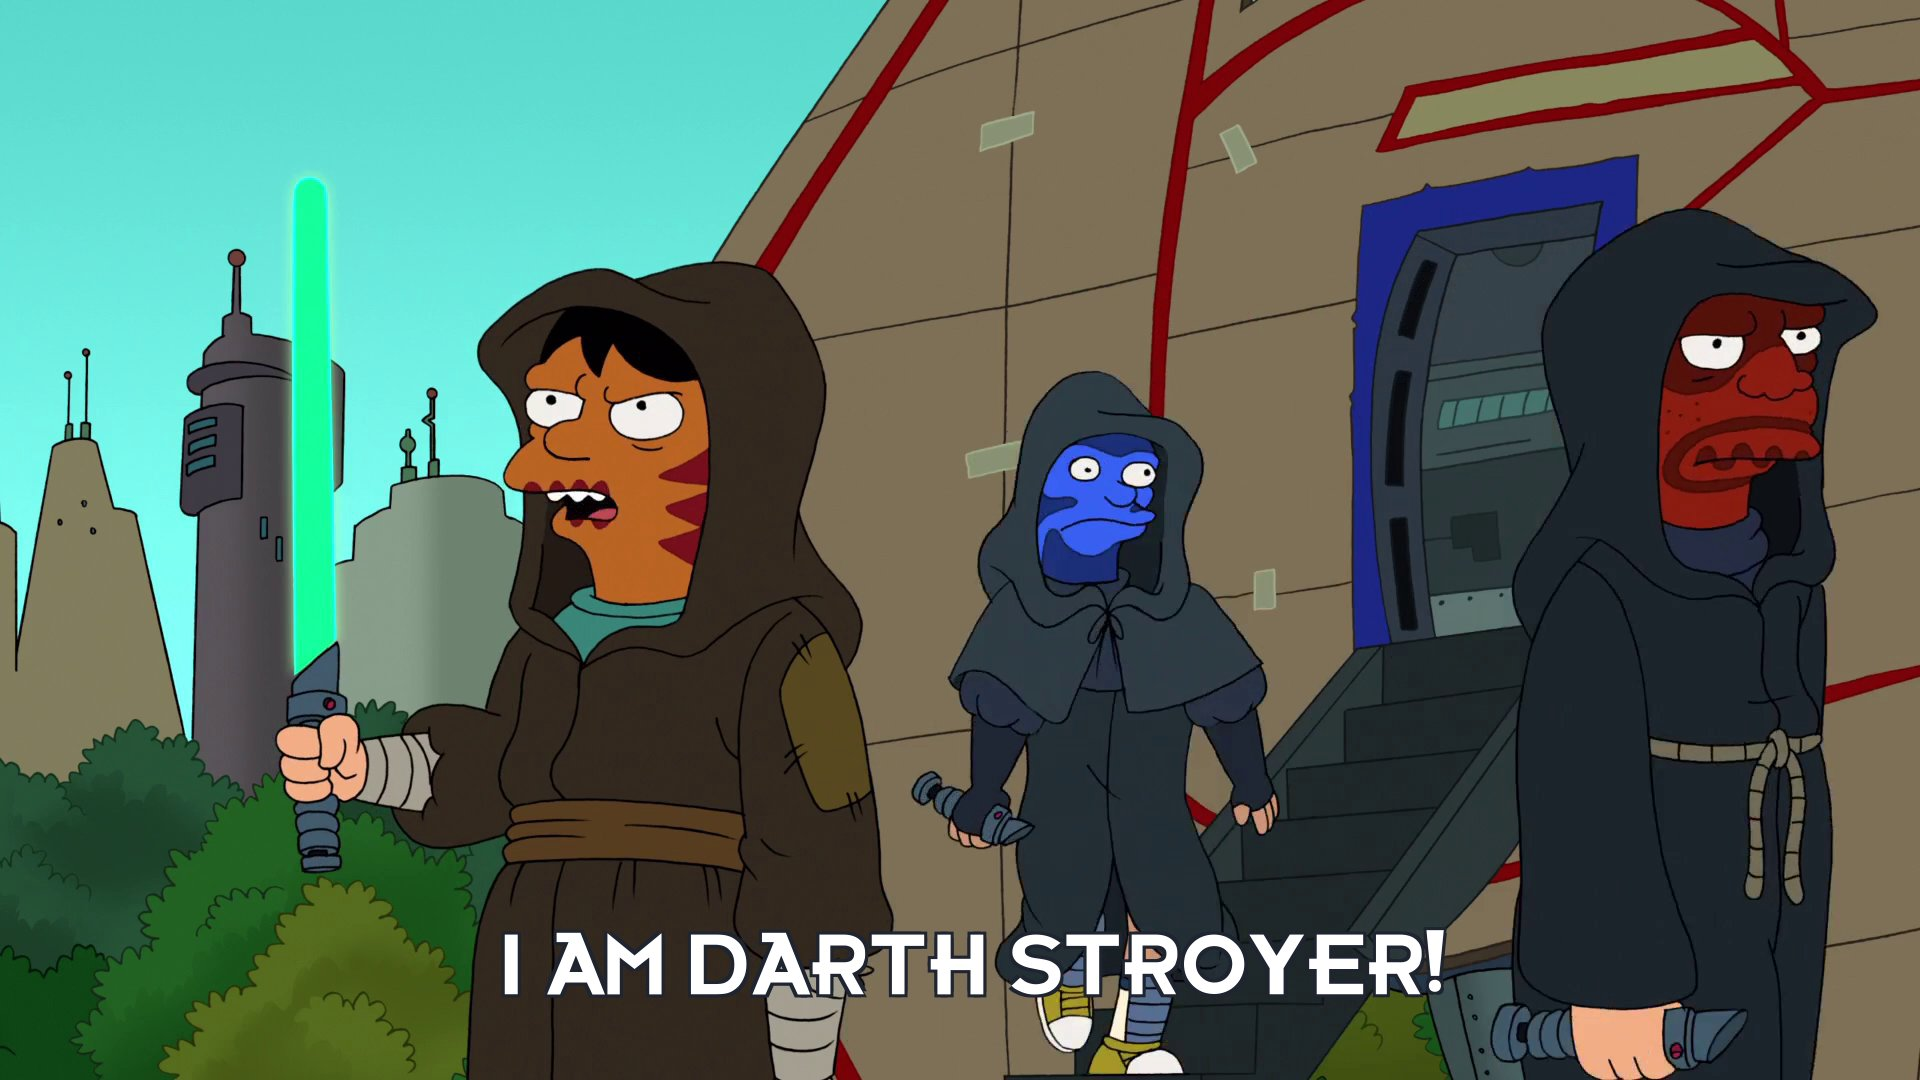 Darth Stroyer: I am Darth Stroyer!